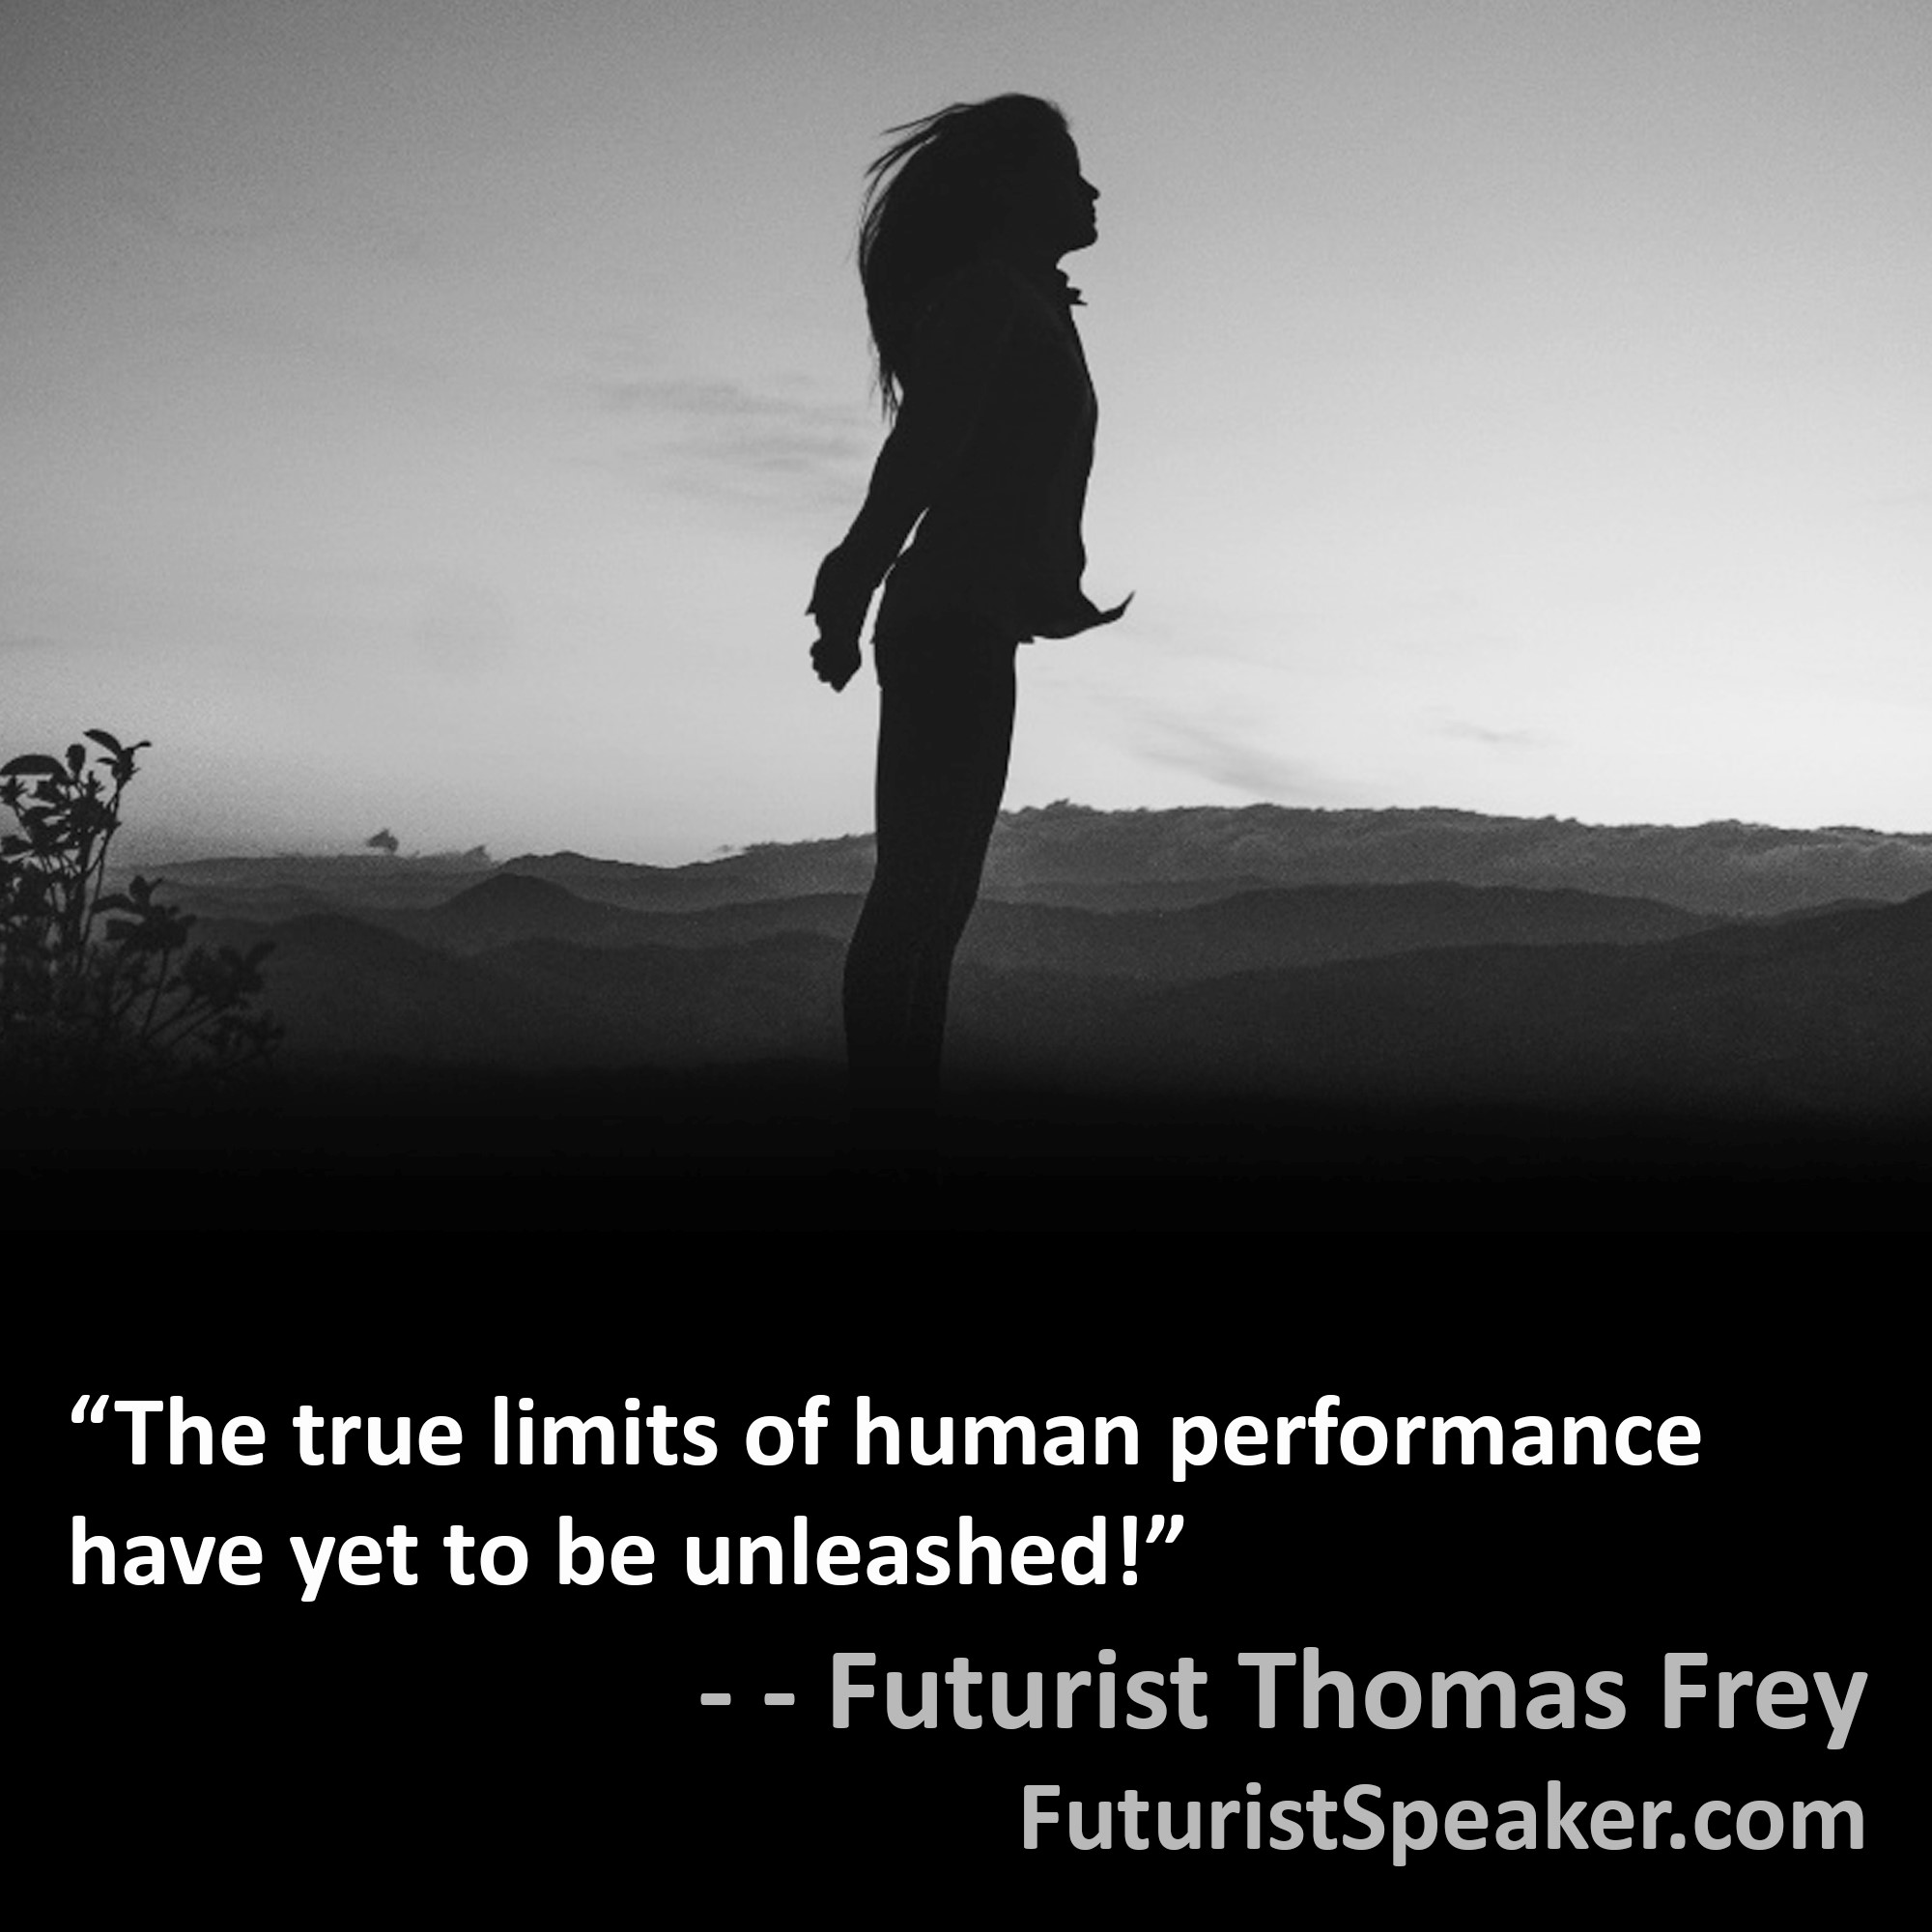 Thomas Frey Futurist Speaker Famous Quote: The true limits of human performance have yet to be unleashed.